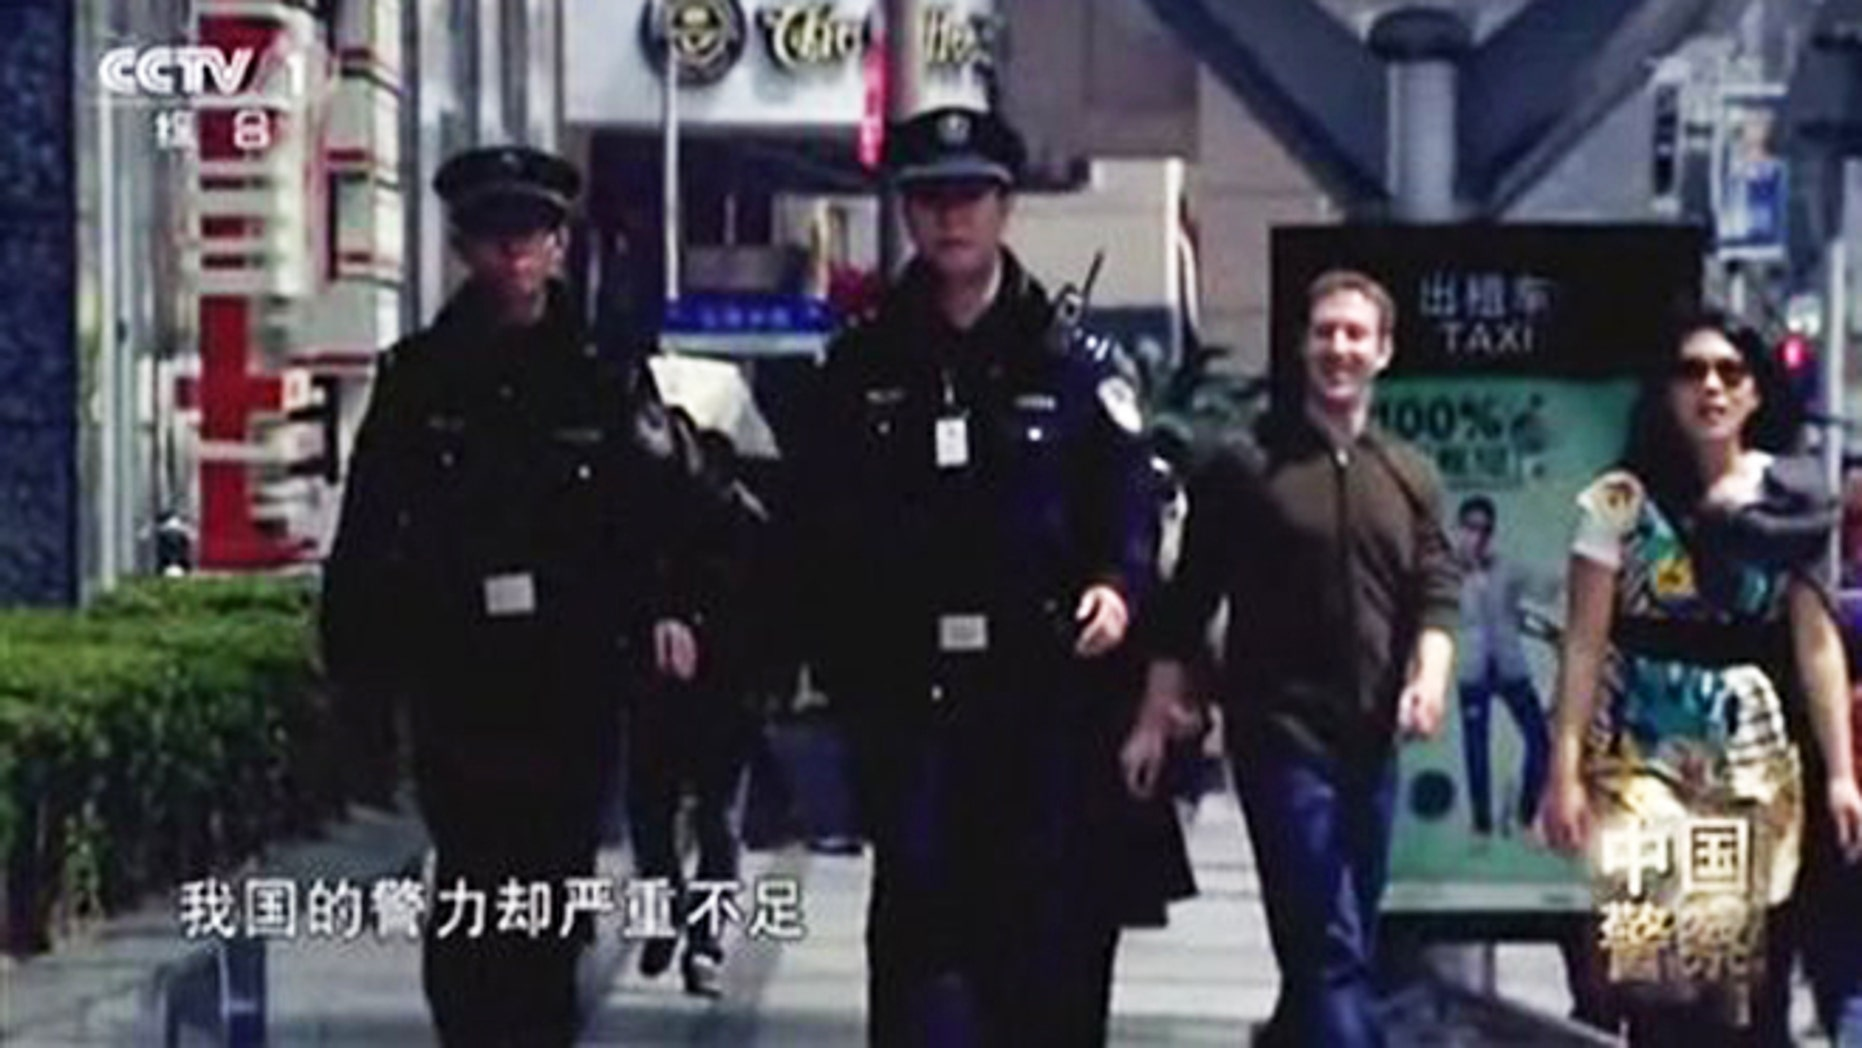 In this image taken from undated CCTV video, Facebook founder Mark Zuckerberg and his now-wife, Priscilla Chan, appear in a Chinese TV documentary about the countrys police force. The footage shows the couple wearing the same clothes they were photographed in during a March 27, 2012 visit to Shanghai.